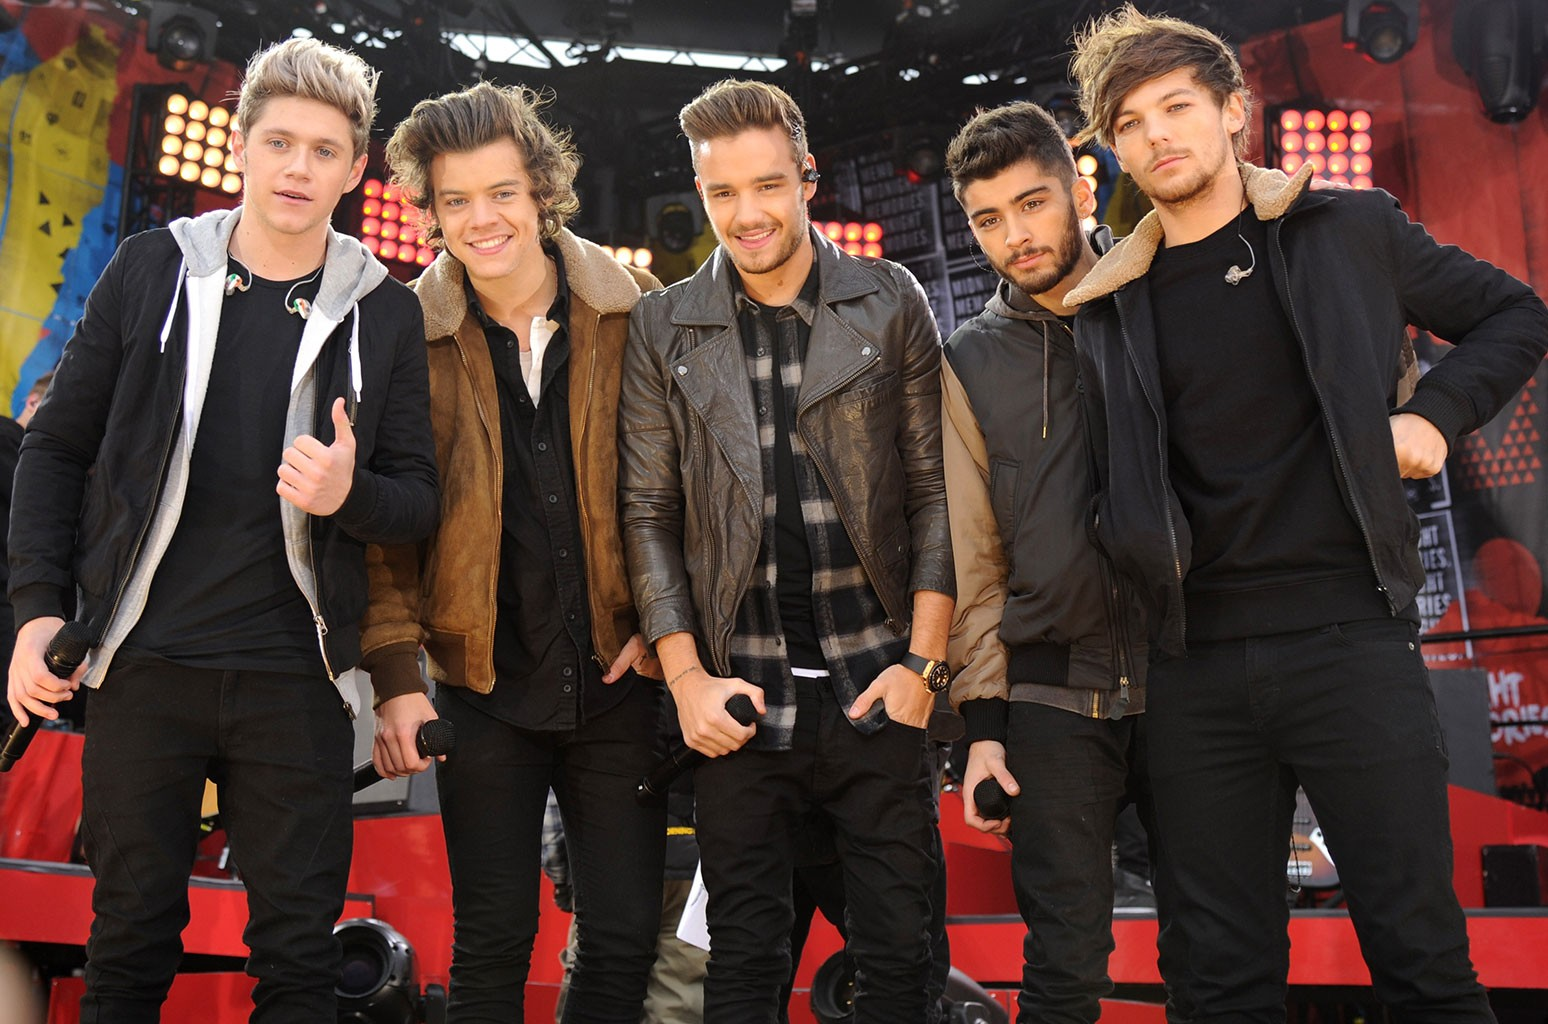 Niall Horan, Harry Styles, Liam Payne, Zayn Malik and Louis Tomlinson of One Direction